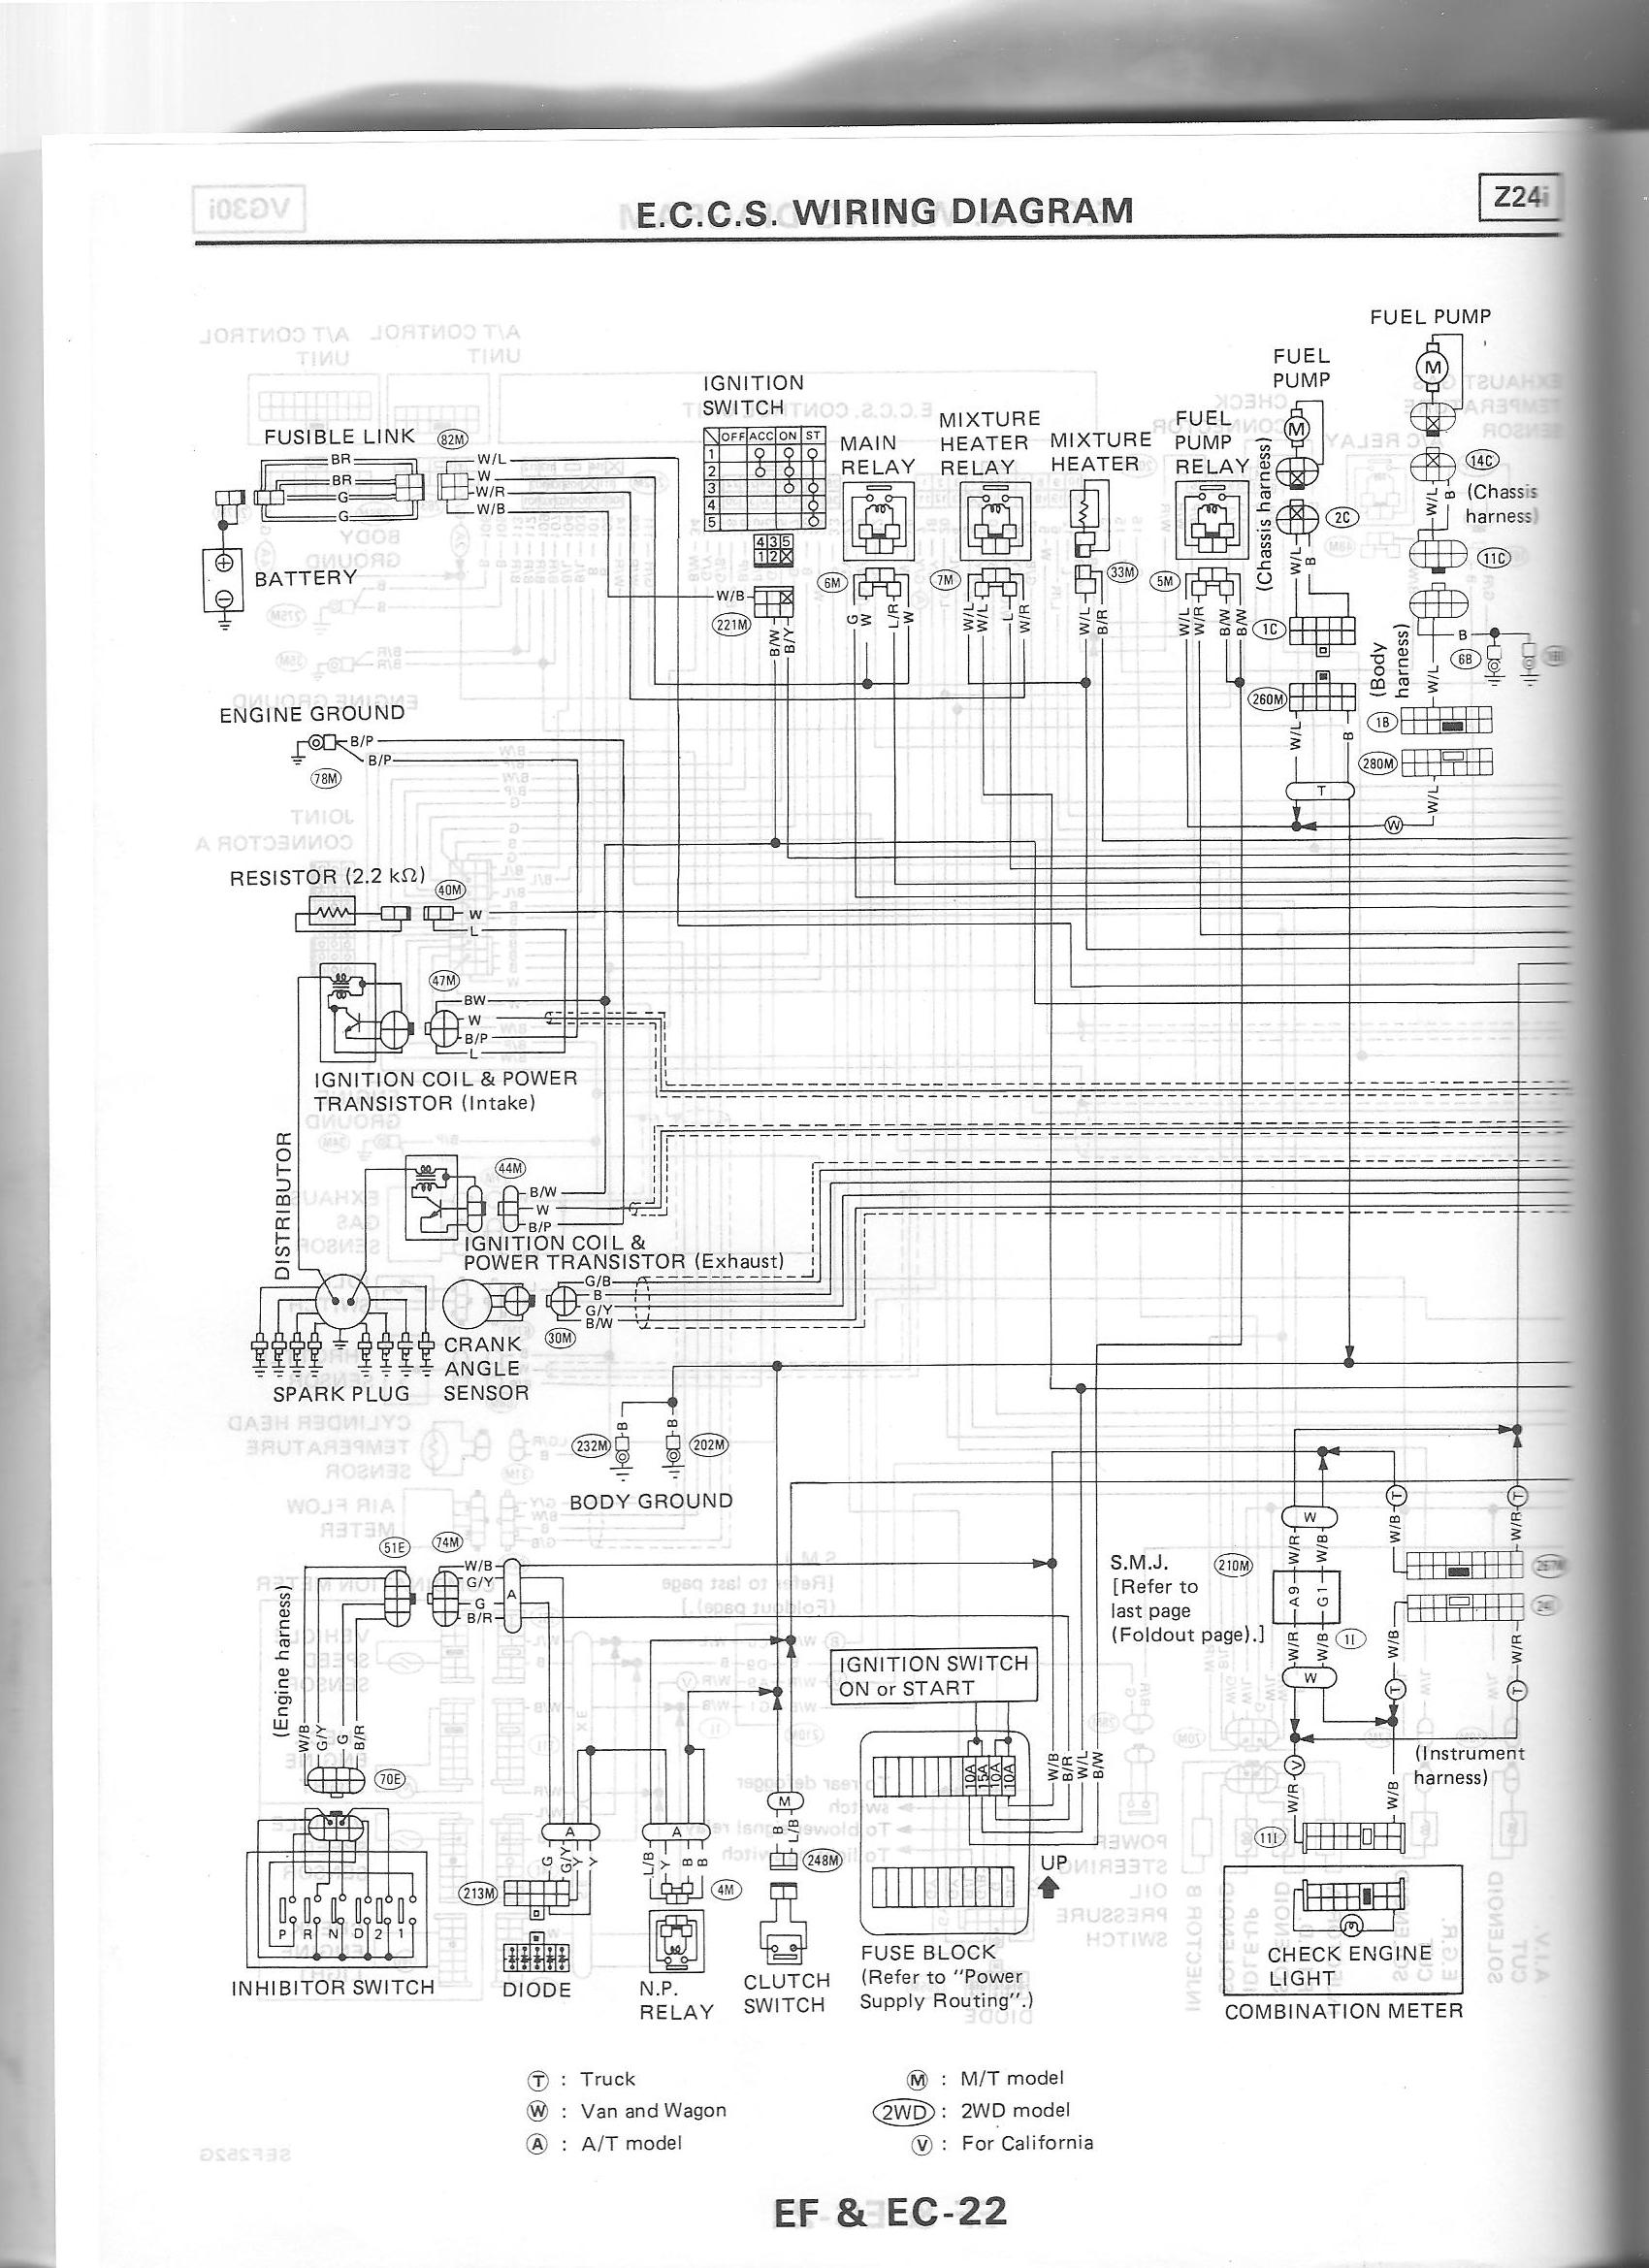 Nismo Engine Diagram Wiring Library Ka24e Nissan 1988 Z24i Schematic